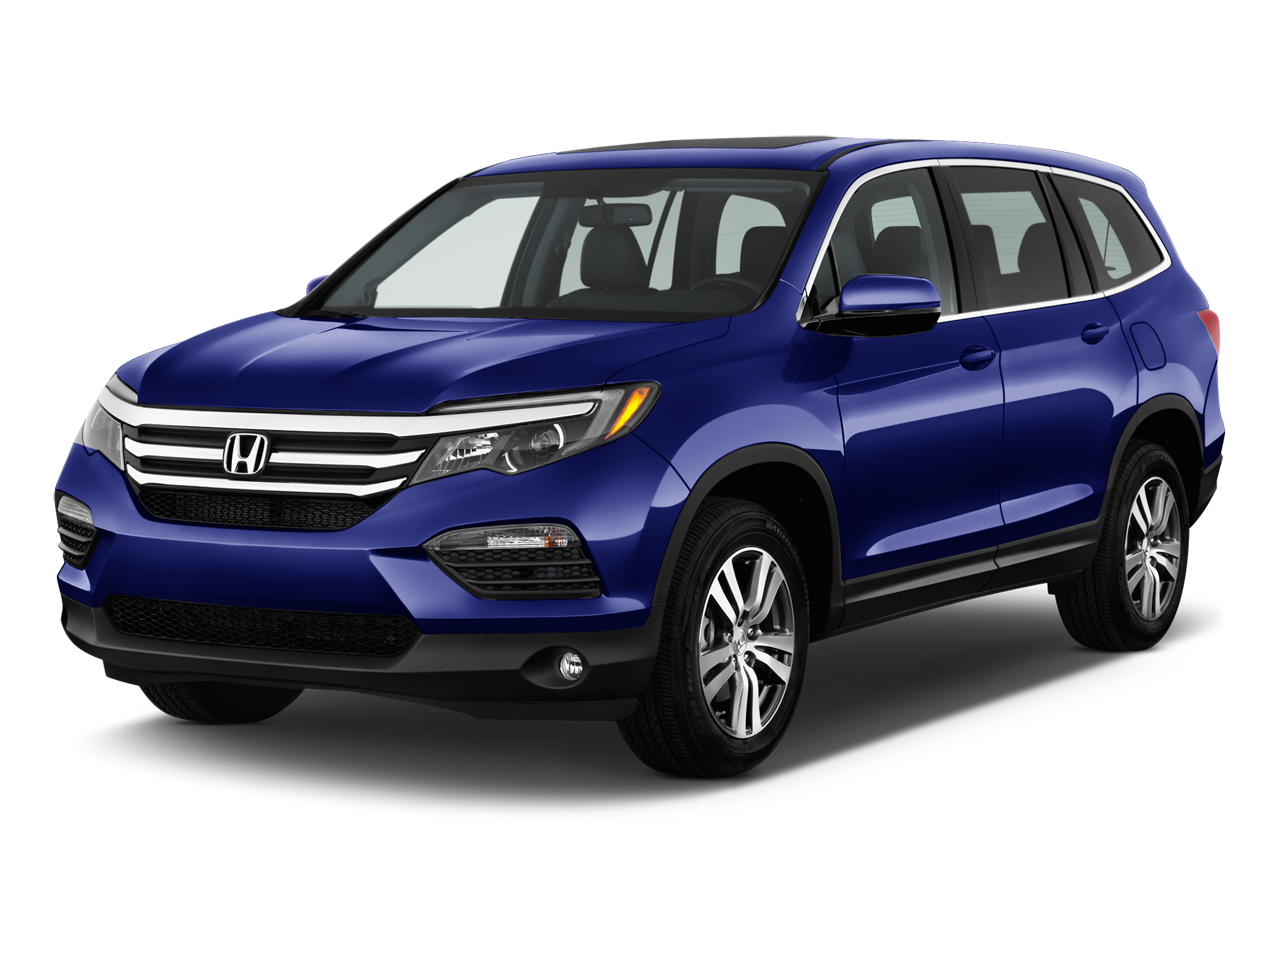 New 2016 honda pilot ex l near sherwood park ab for Honda pilot images